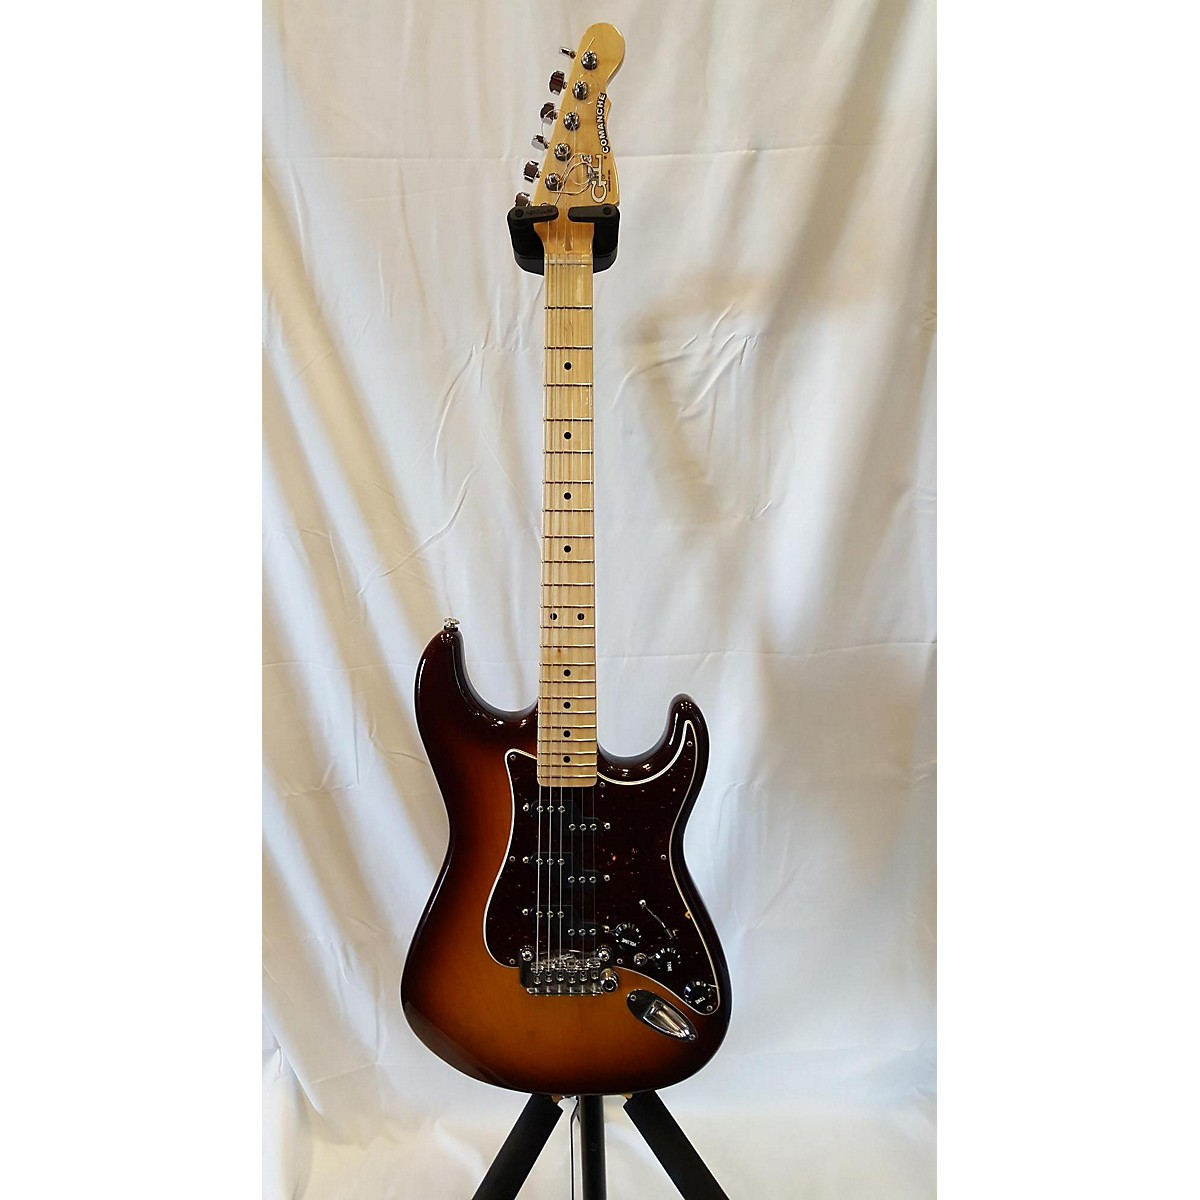 G&L Commanche Solid Body Electric Guitar